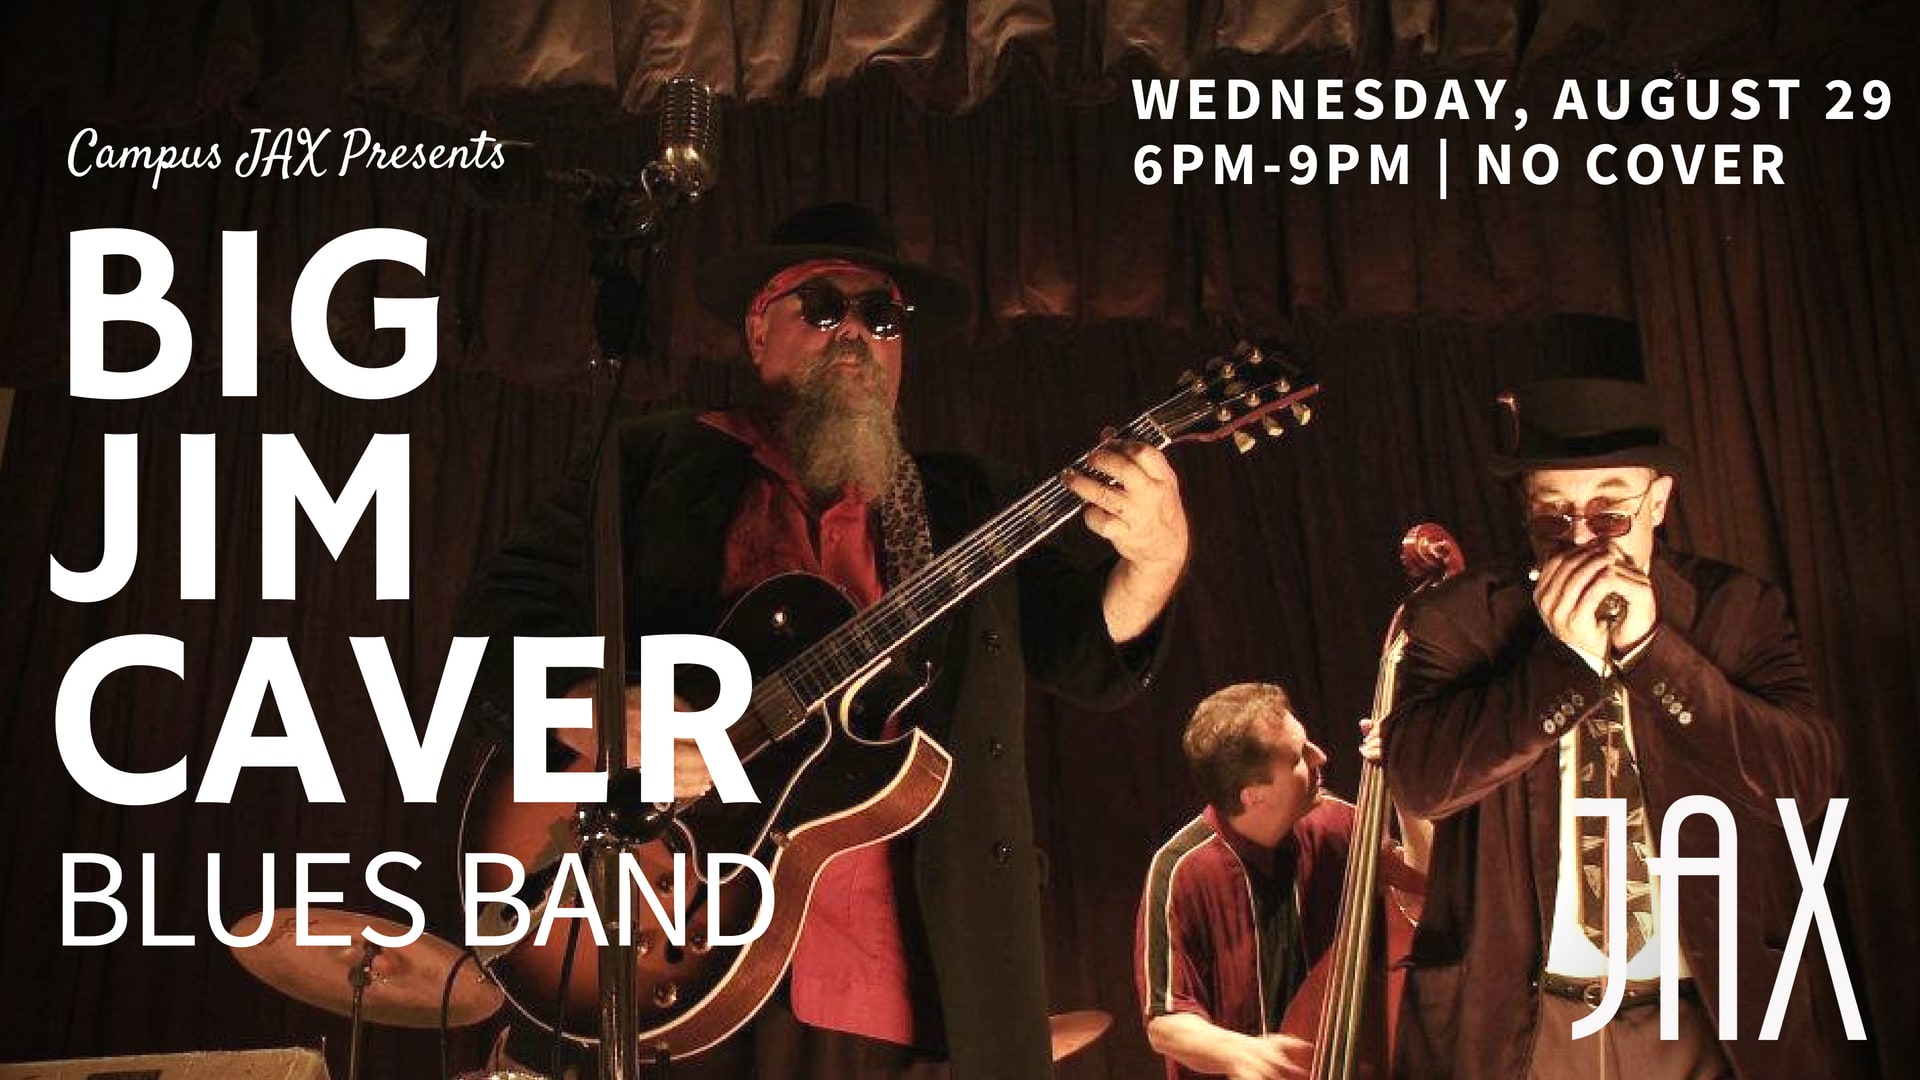 August 29 | WEDNESDAY NIGHT BLUES with BIG JIM CAVER